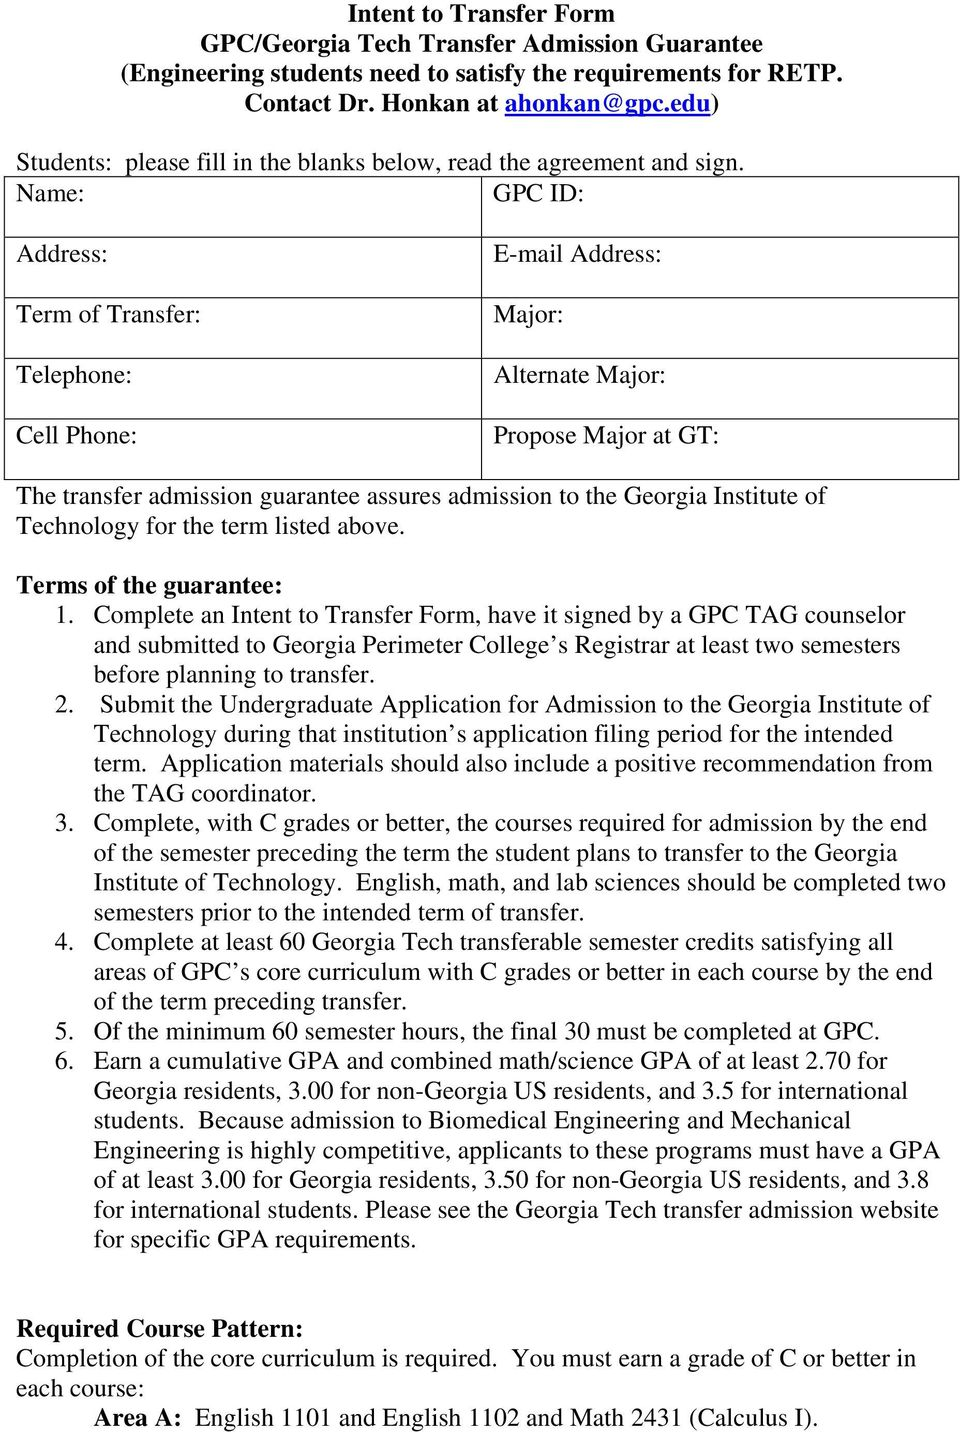 Name: GPC ID: Address: Term of Transfer: Telephone: Cell Phone: E-mail Address: Major: Alternate Major: Propose Major at GT: The transfer admission guarantee assures admission to the Georgia